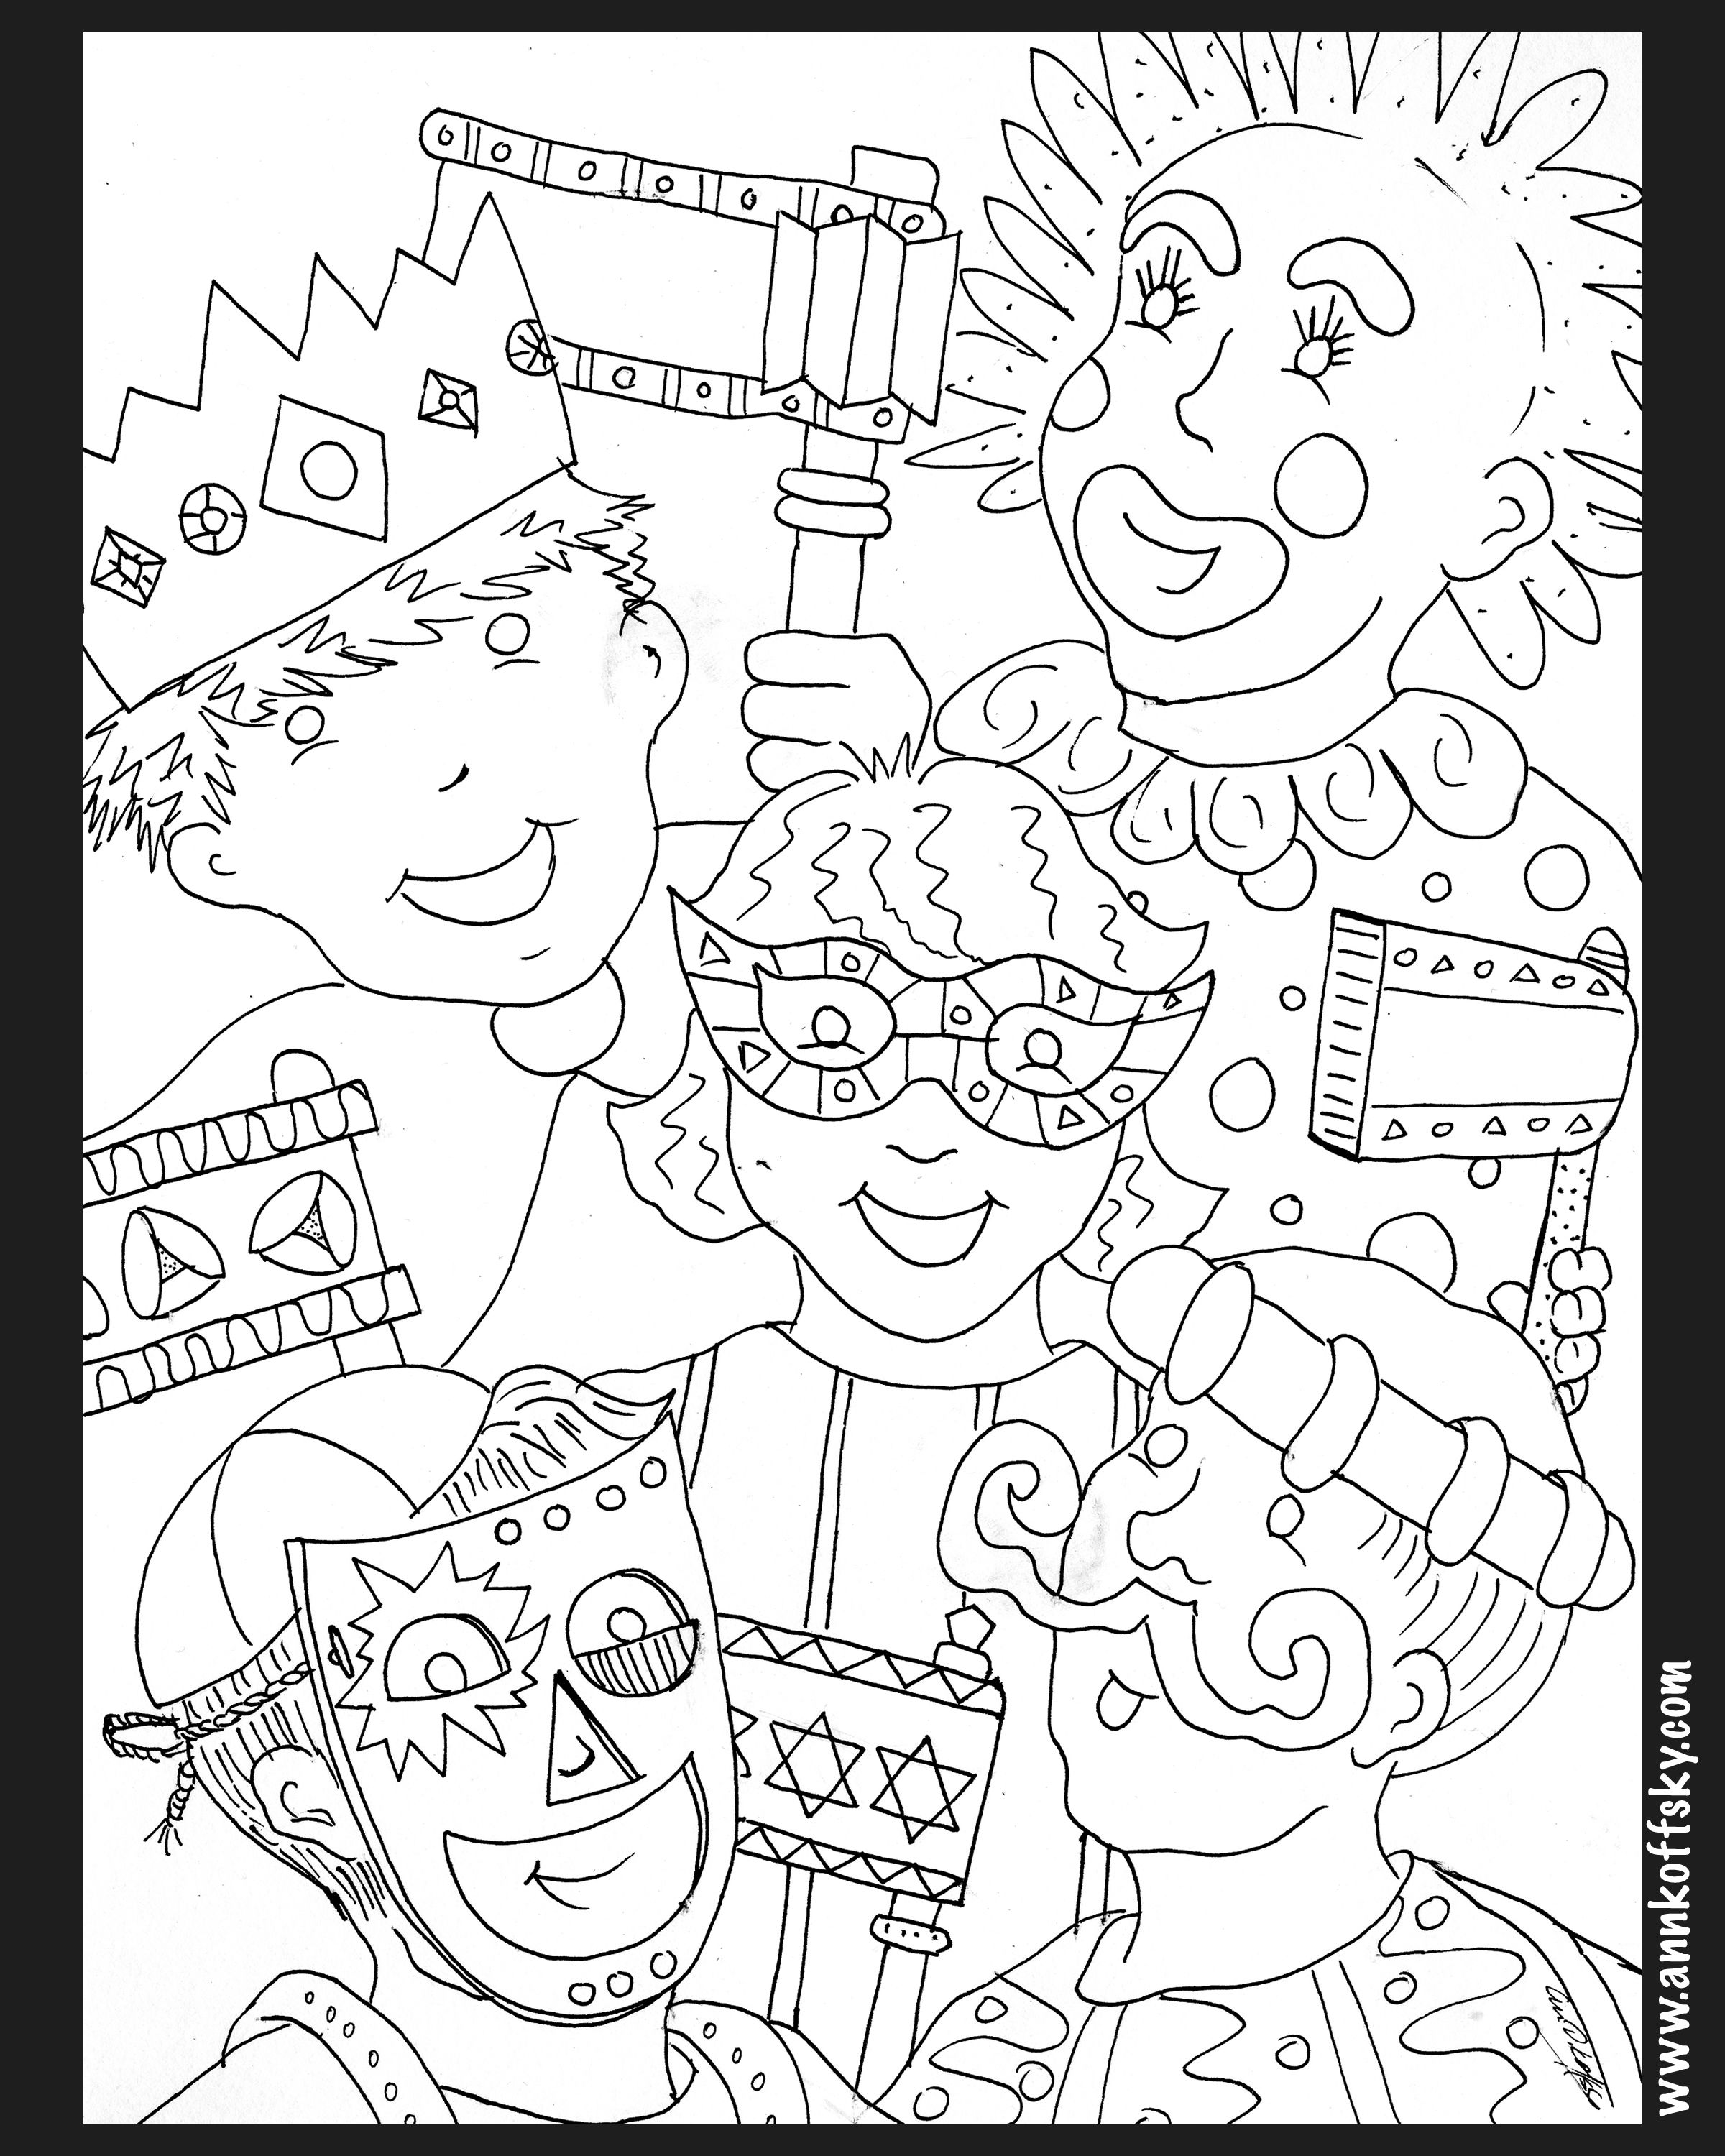 Purim Coloring Page | Cleaning | Pinterest | Sunday school